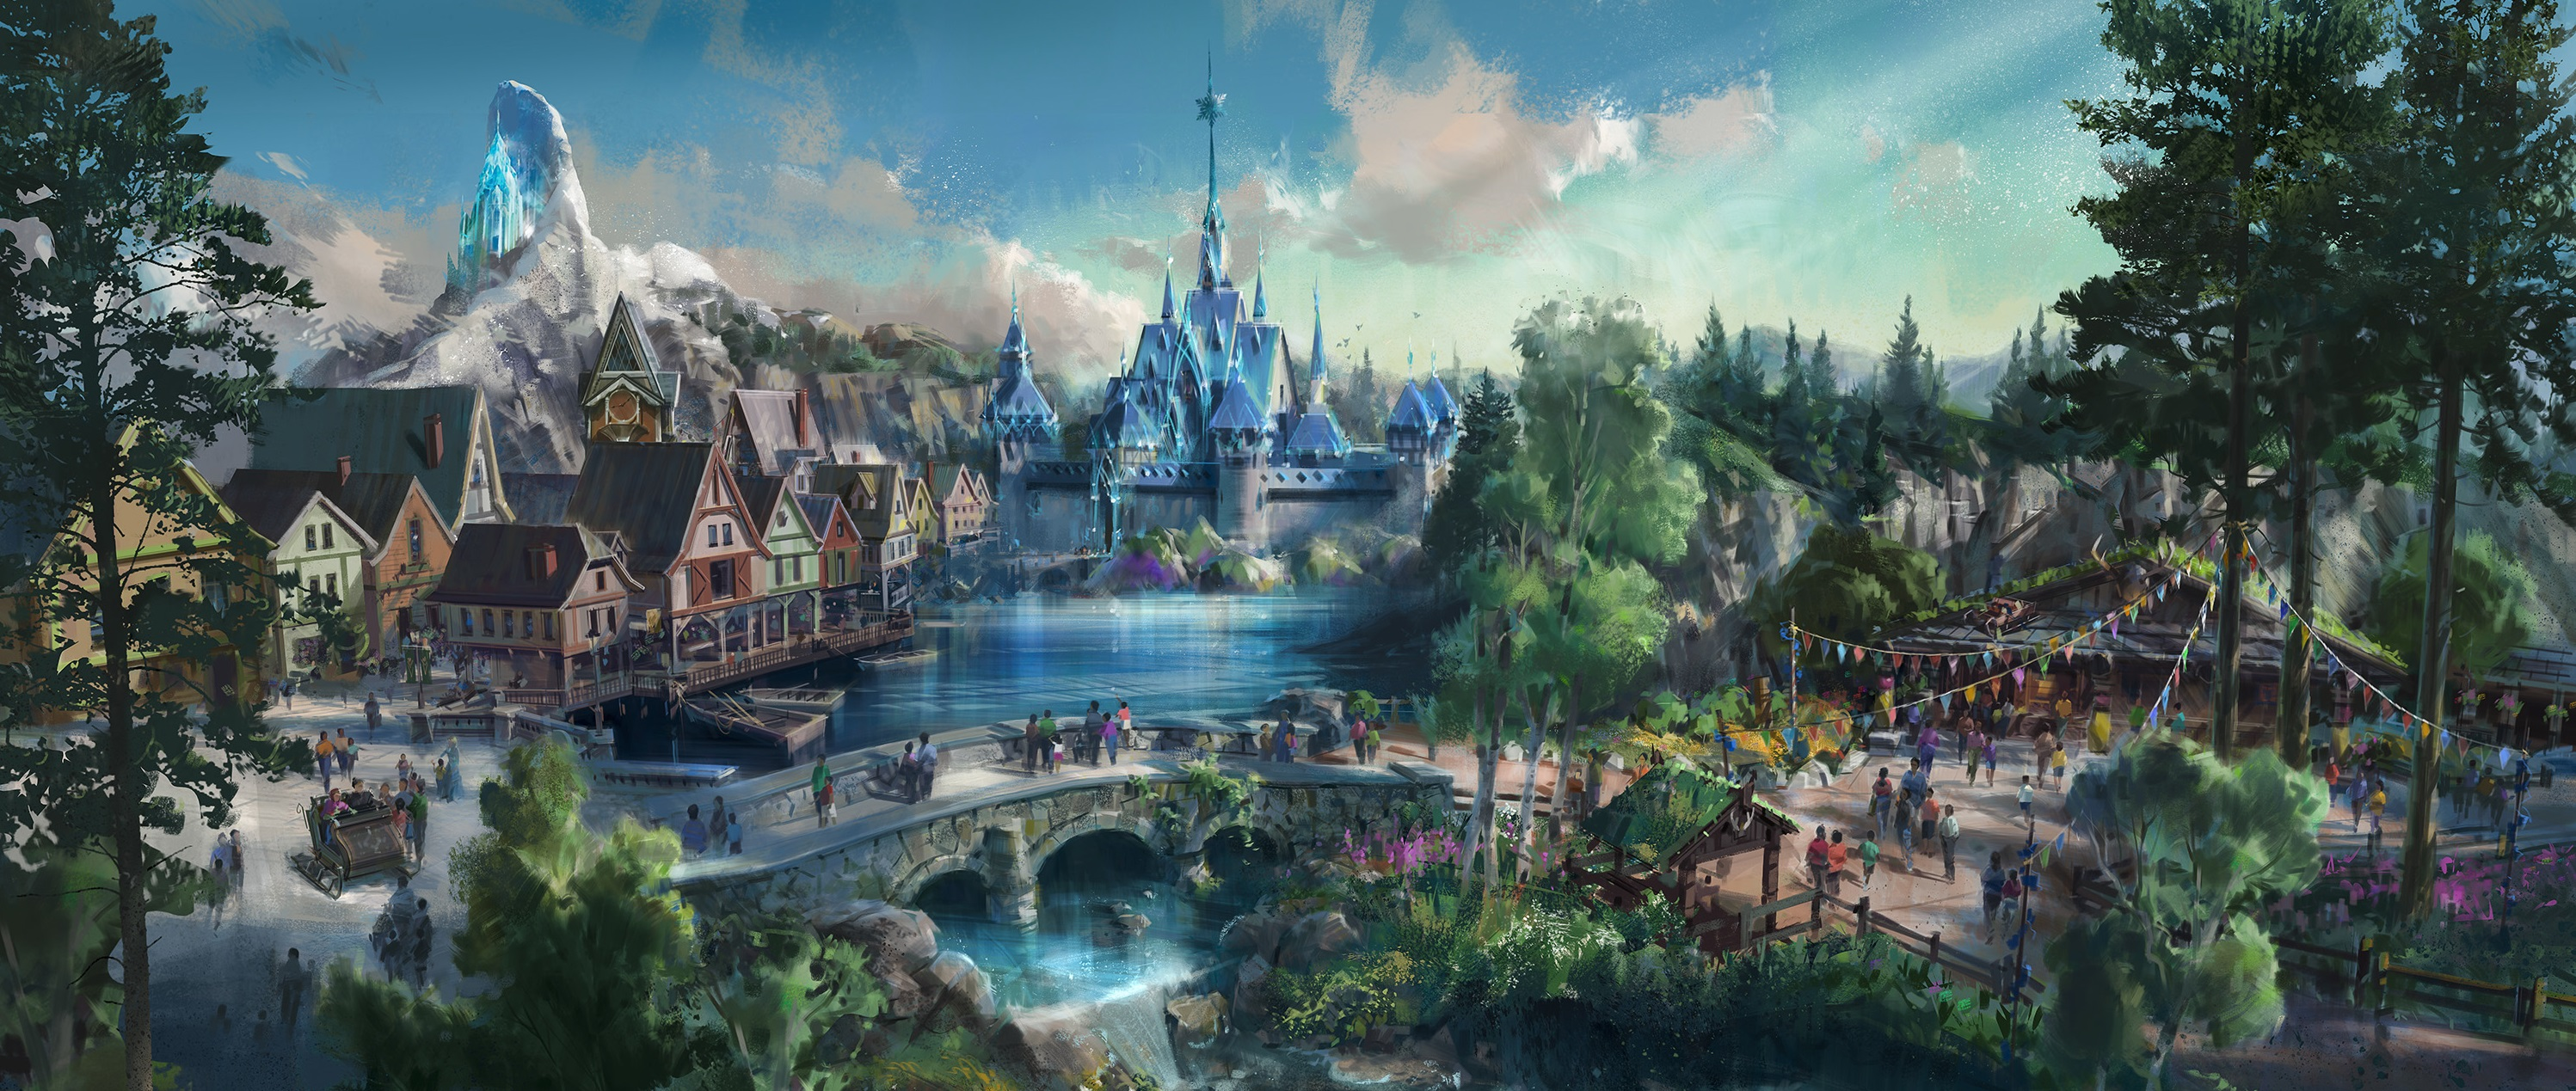 """In an undated handout image, an artist rendering of the planned """"Frozen"""" themed area at Hong Kong Disneyland, part of planned upgrades to the park. Hong Kong Disneyland, the Walt Disney Company's smallest theme park resort, which lost money amid declining attendance in 2015, will soon get $1.4 billion in enhancements as part of a colossal six-year growth plan."""